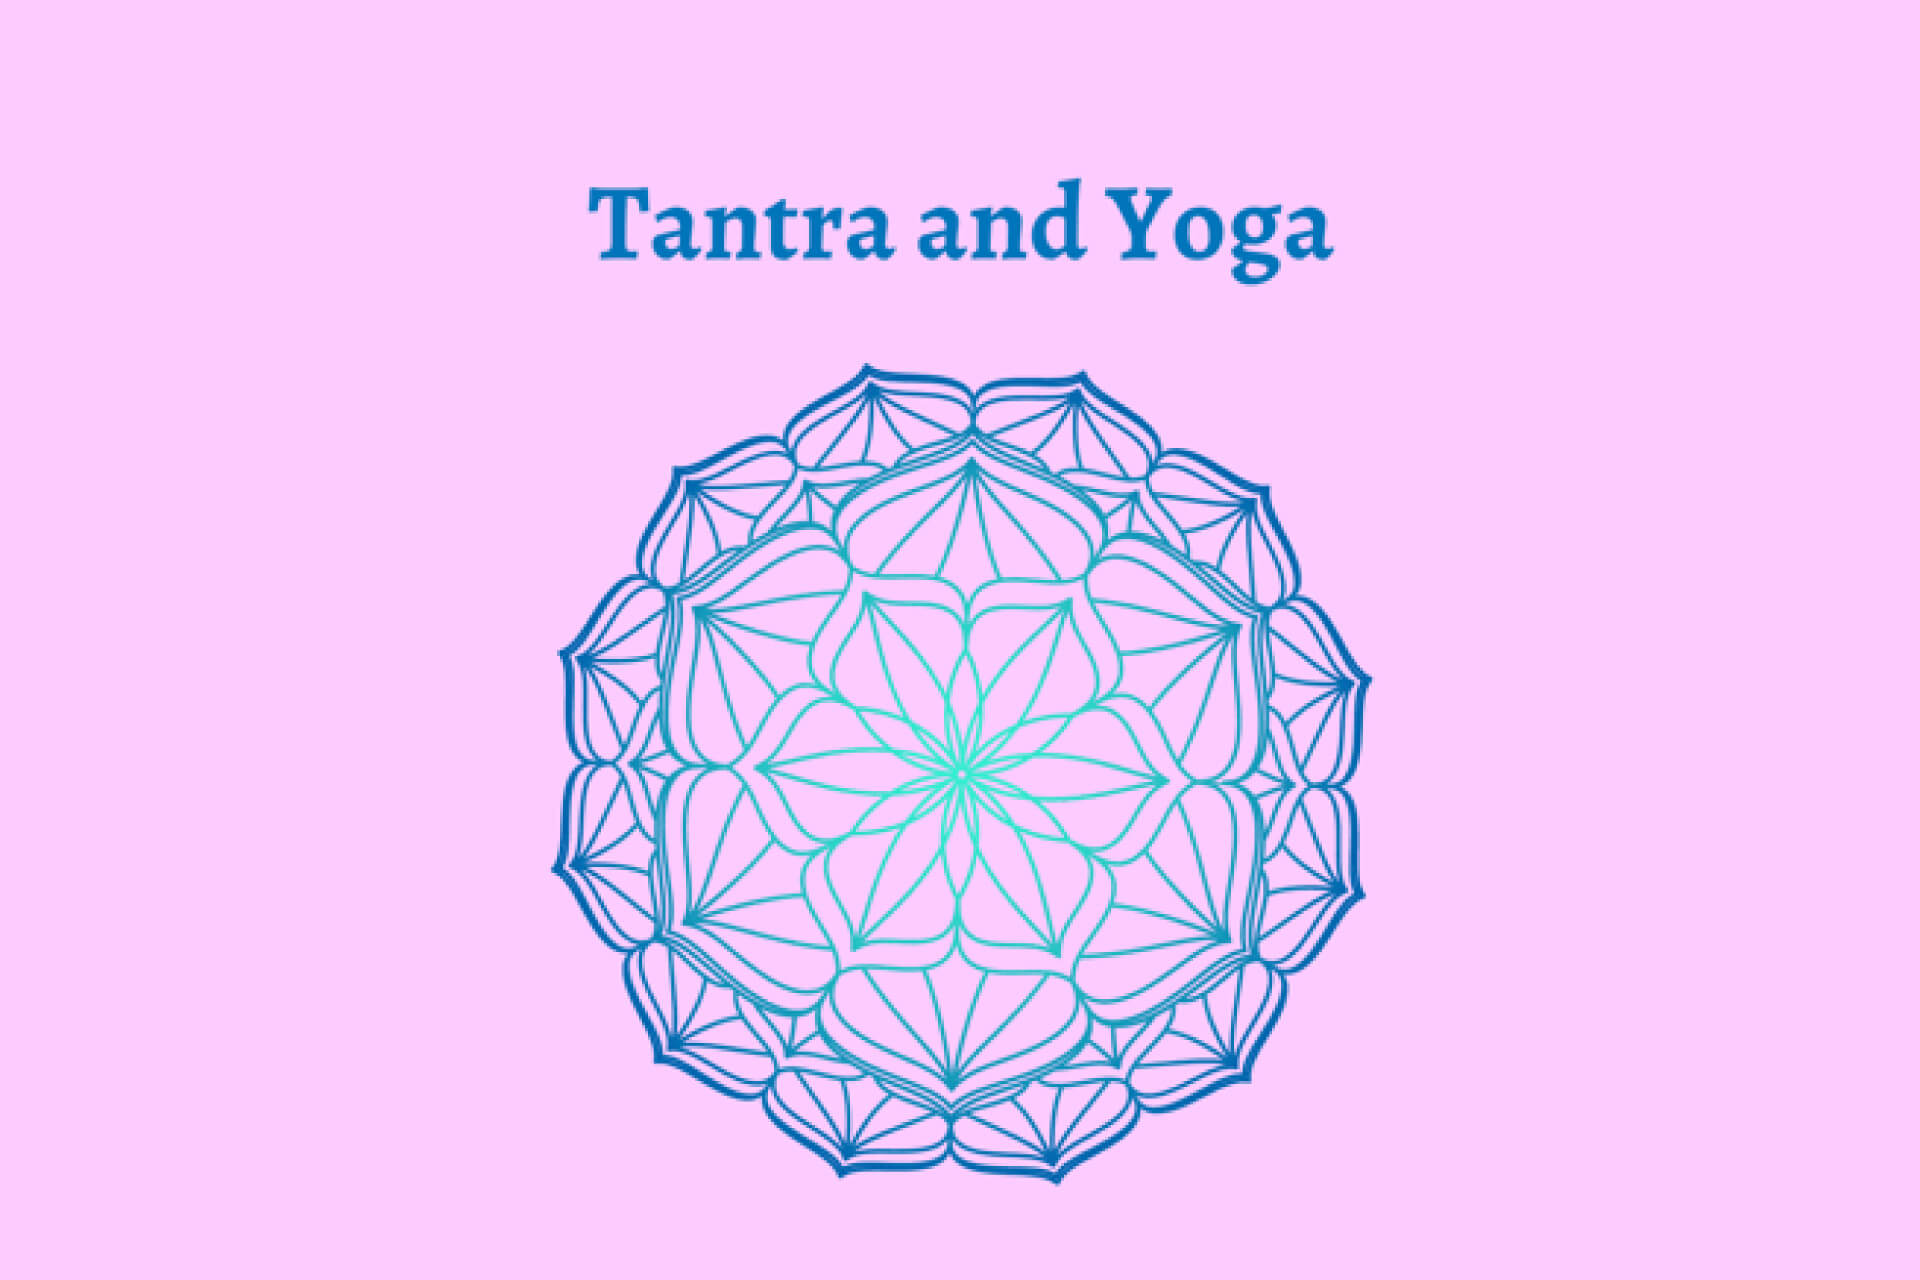 Tantra and Yoga